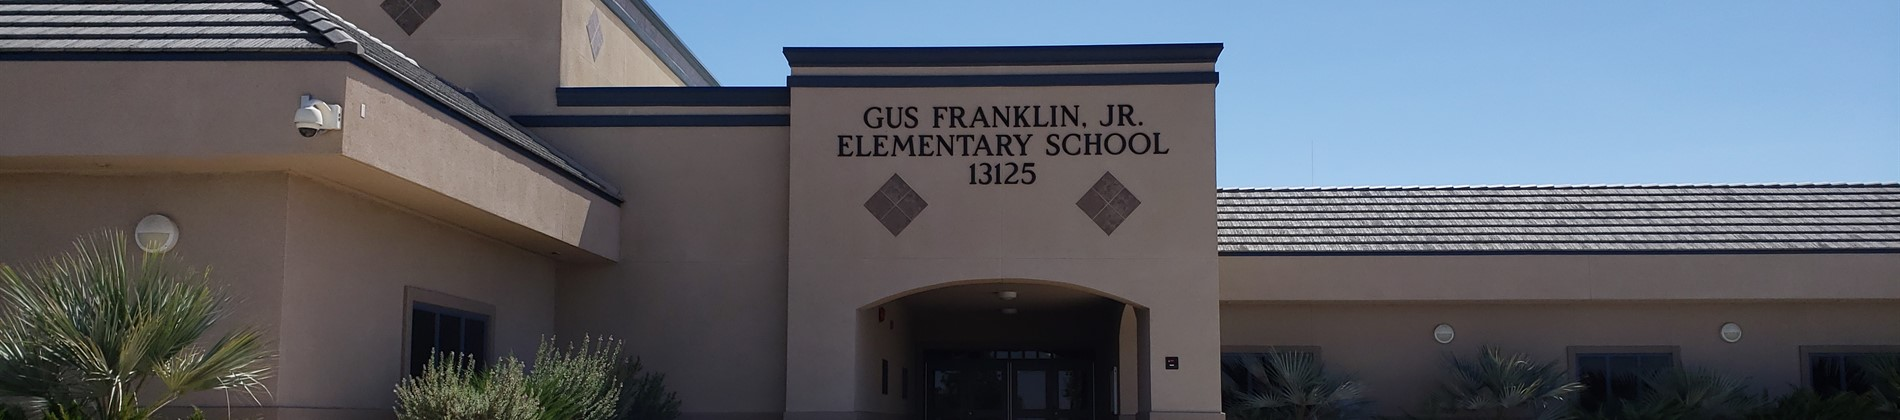 Gus Franklin, Jr. Elementary Entrance